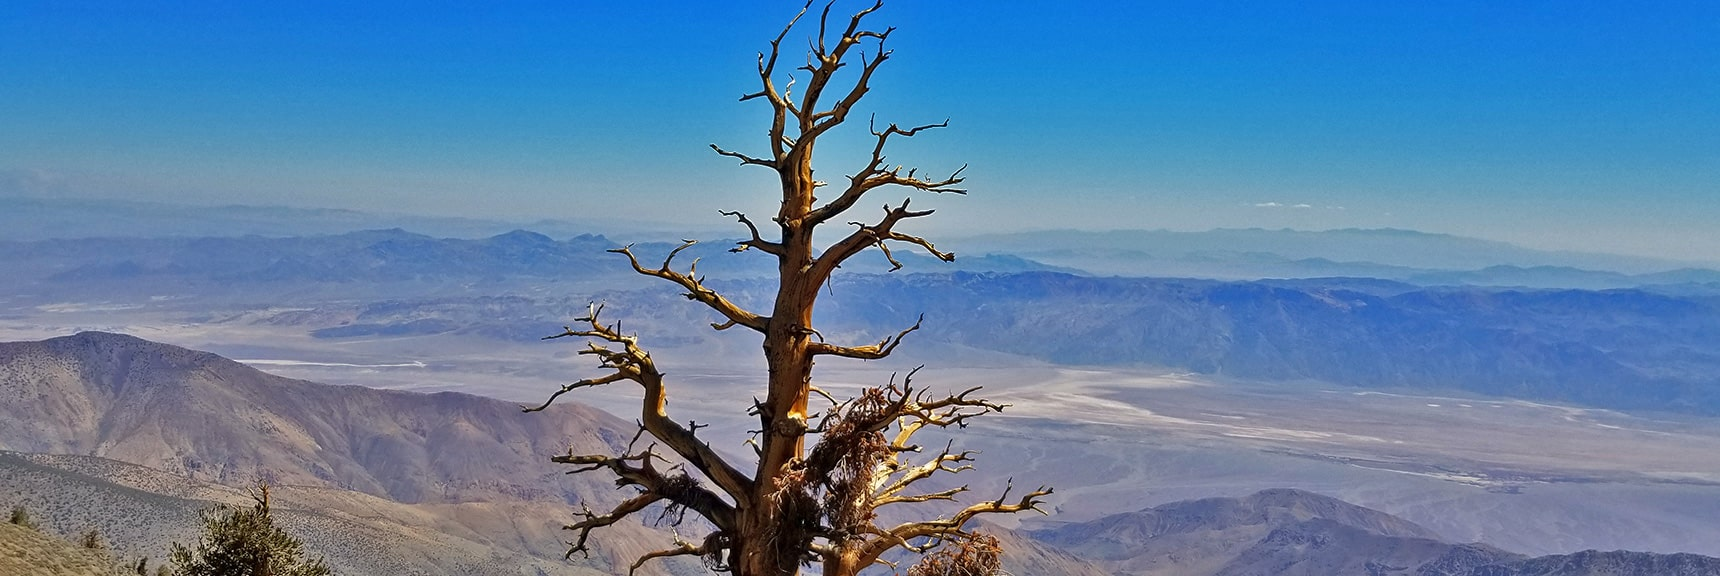 Another View Down to Death Valley Floor. Majestic Bristlecone Pine in Foreground   Telescope Peak Summit from Wildrose Charcoal Kilns Parking Area, Panamint Mountains, Death Valley National Park, California